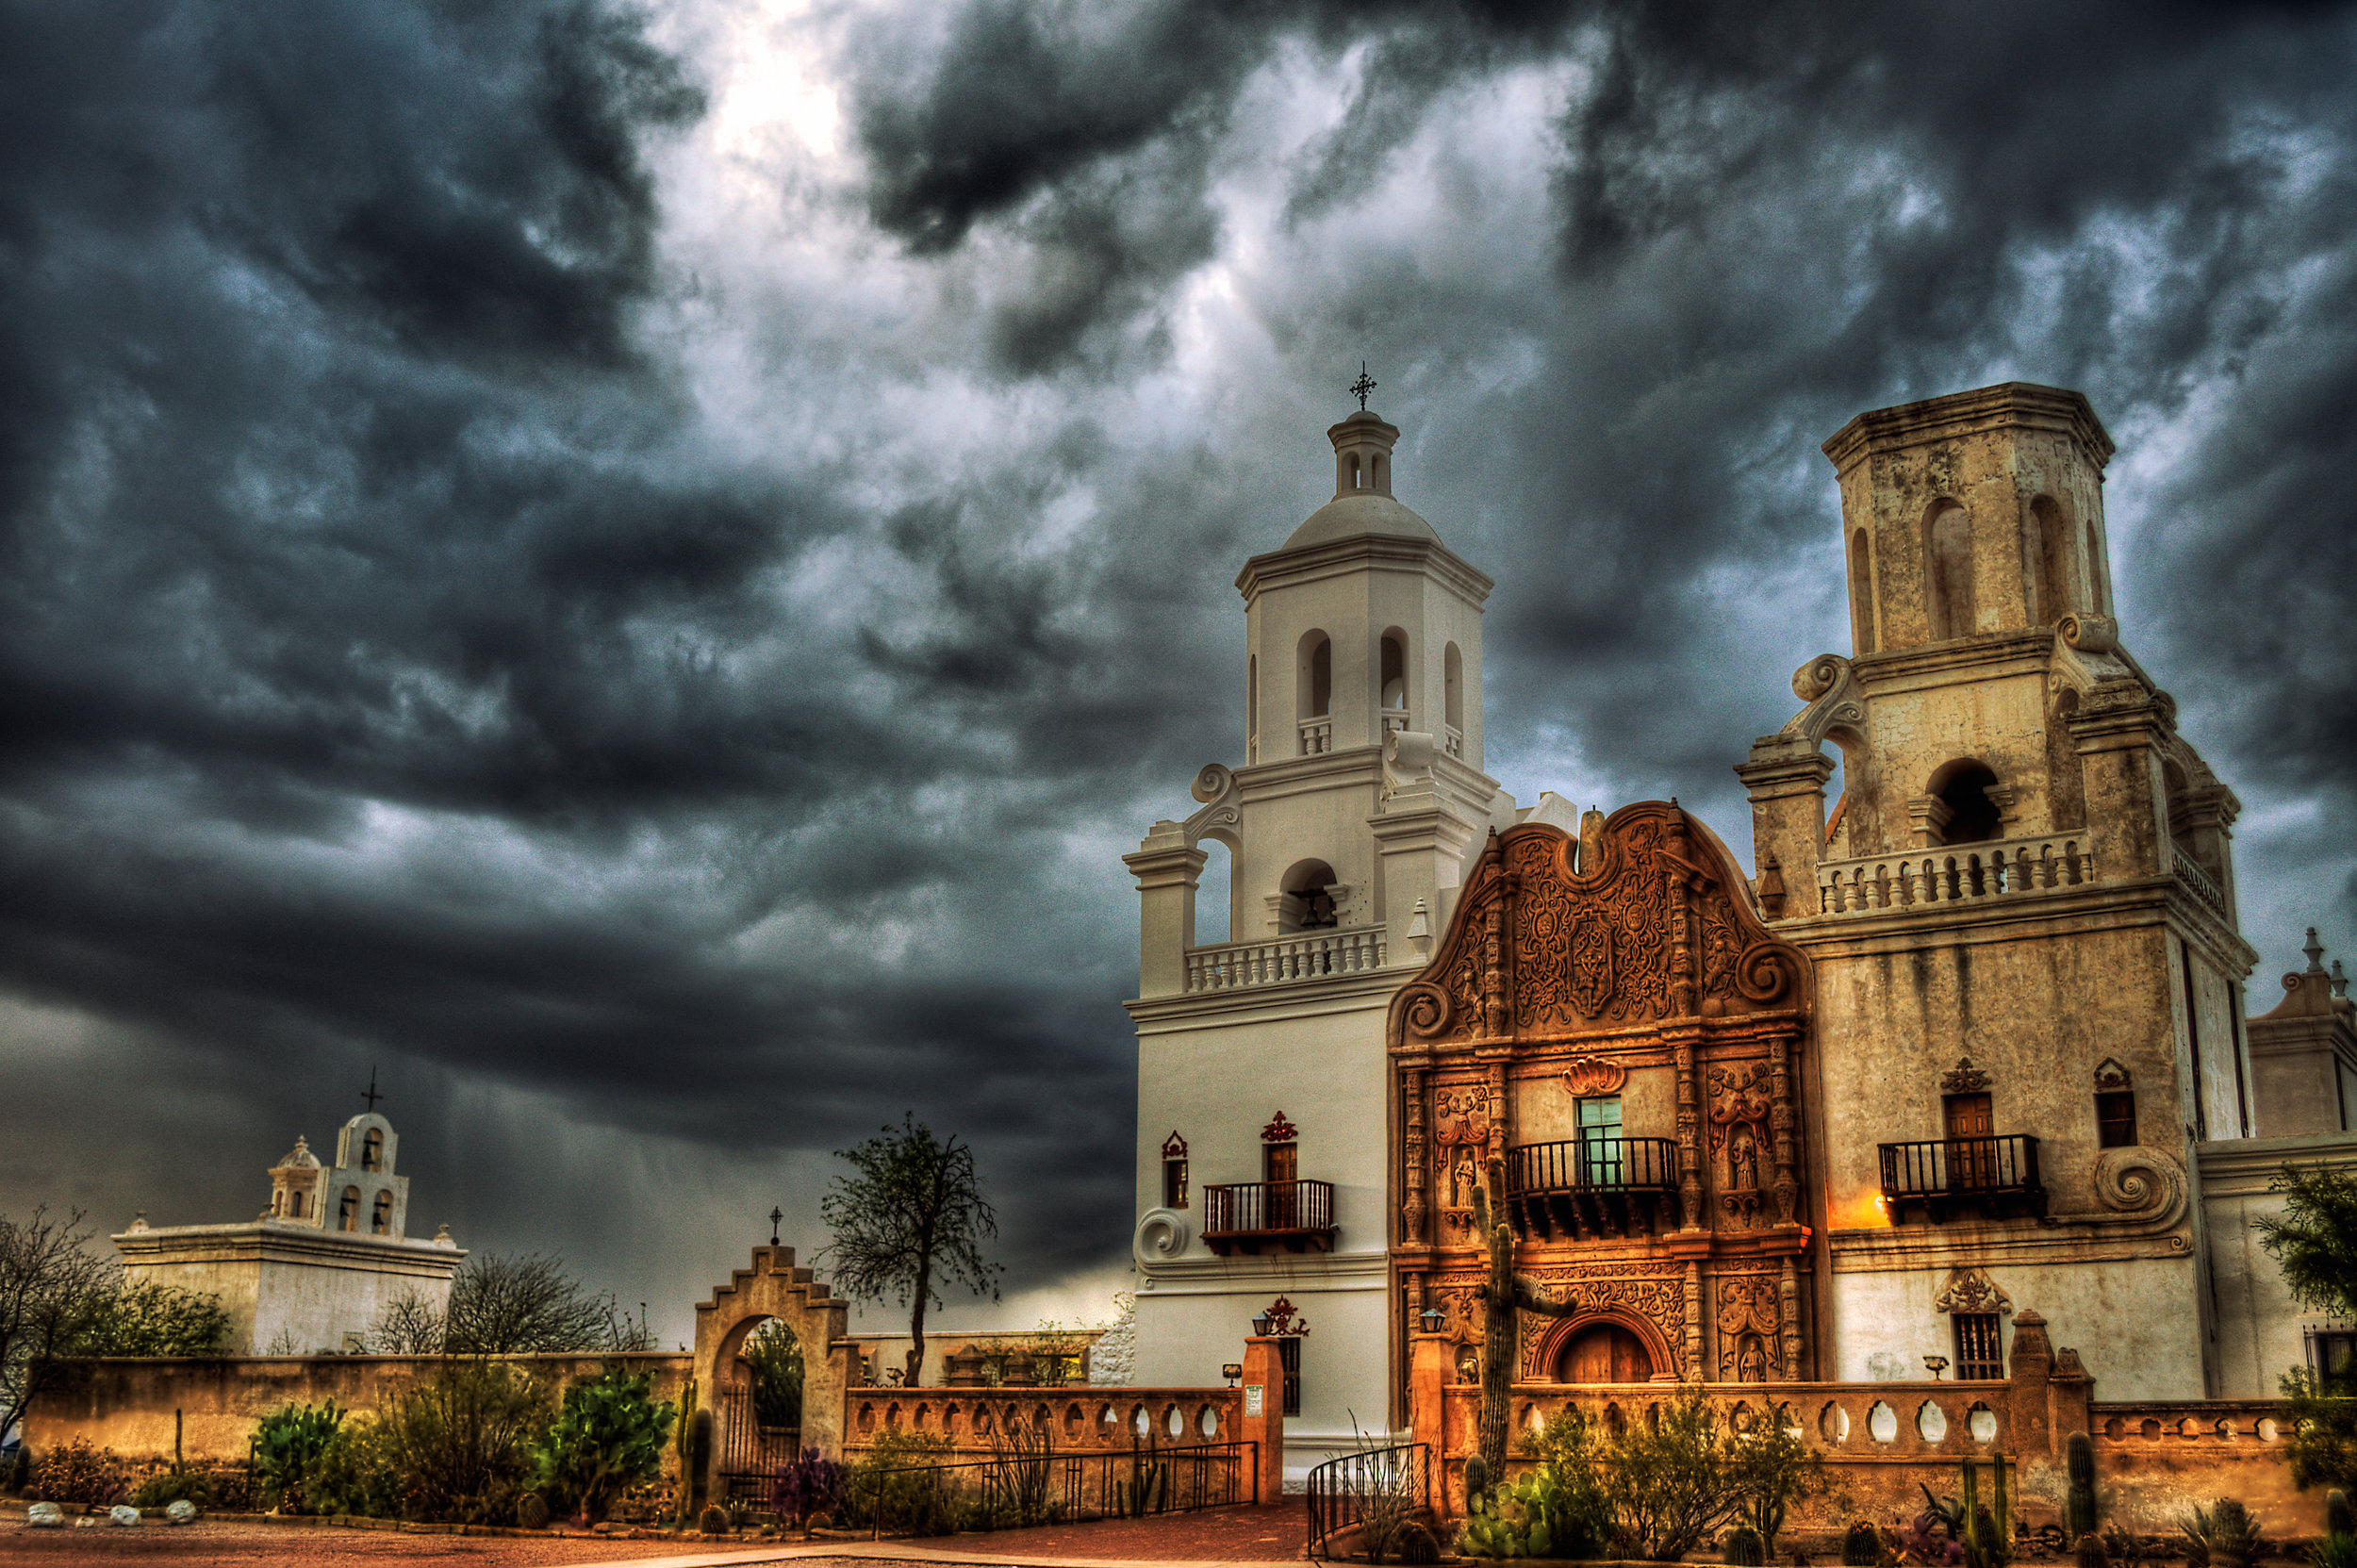 Mission San Xavier del Bac • Photo by Rich Helmer